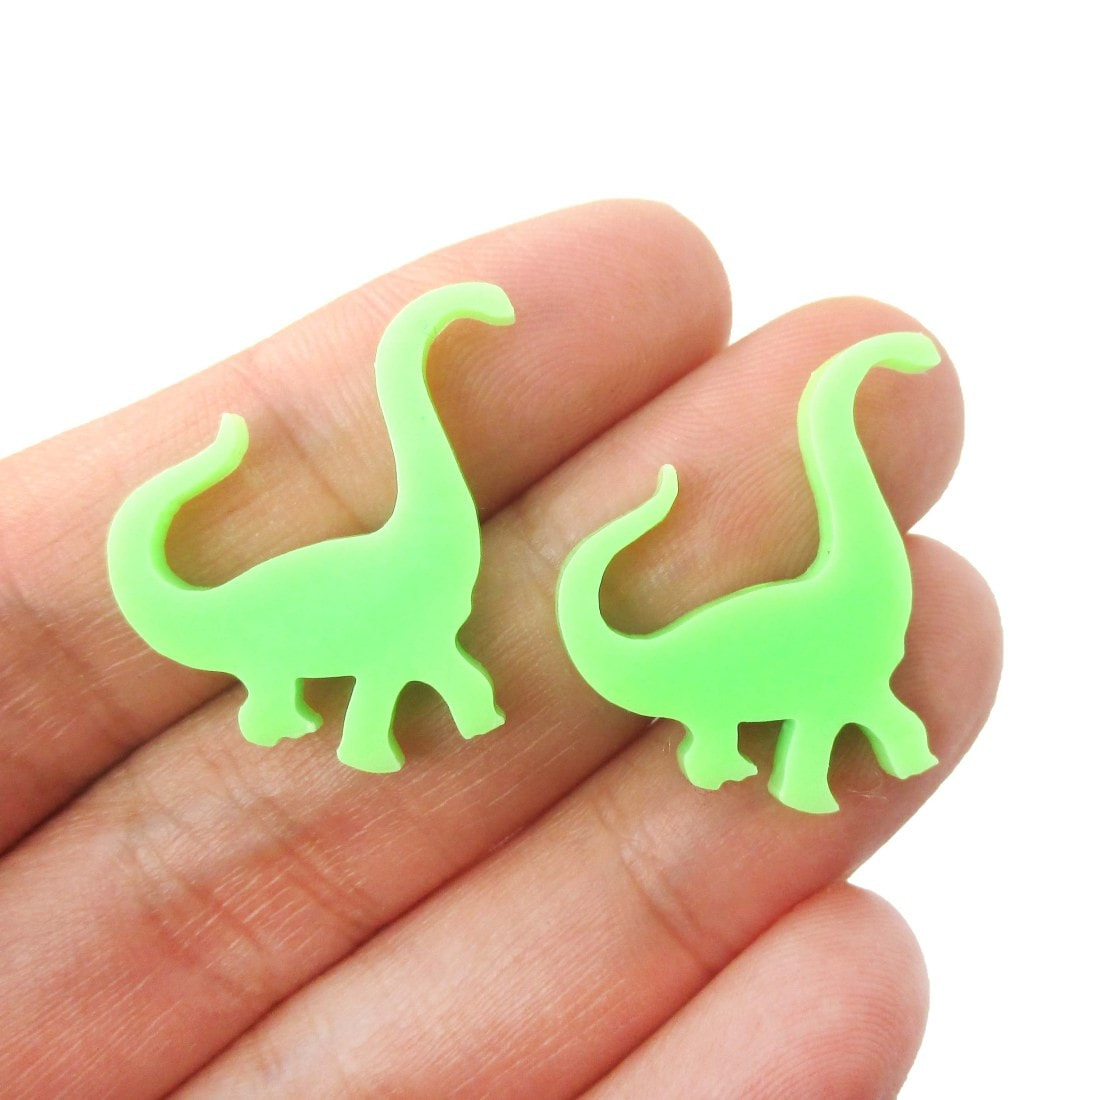 Brontosaurus Dinosaur Shaped Laser Cut Stud Earrings in Green